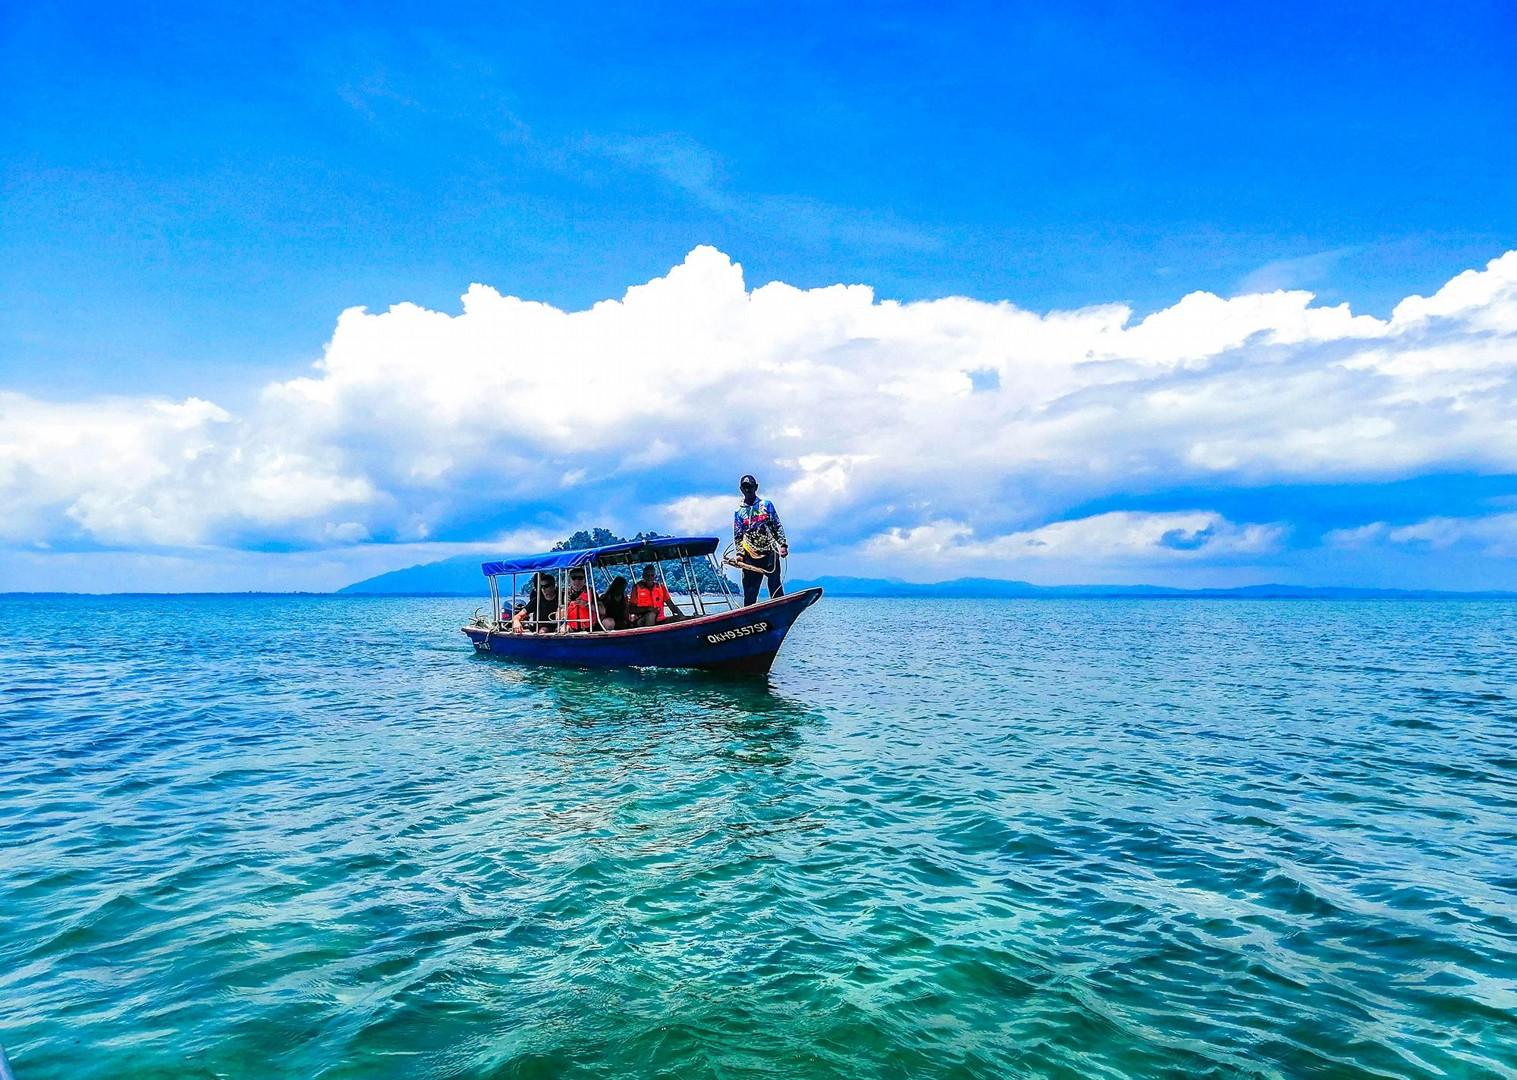 borneo-boat-trip-guided-road-cycling-holiday-with-saddle-skedaddle.jpg - Borneo - Sarawak to Sabah - Guided Road Cycling Holiday - Road Cycling